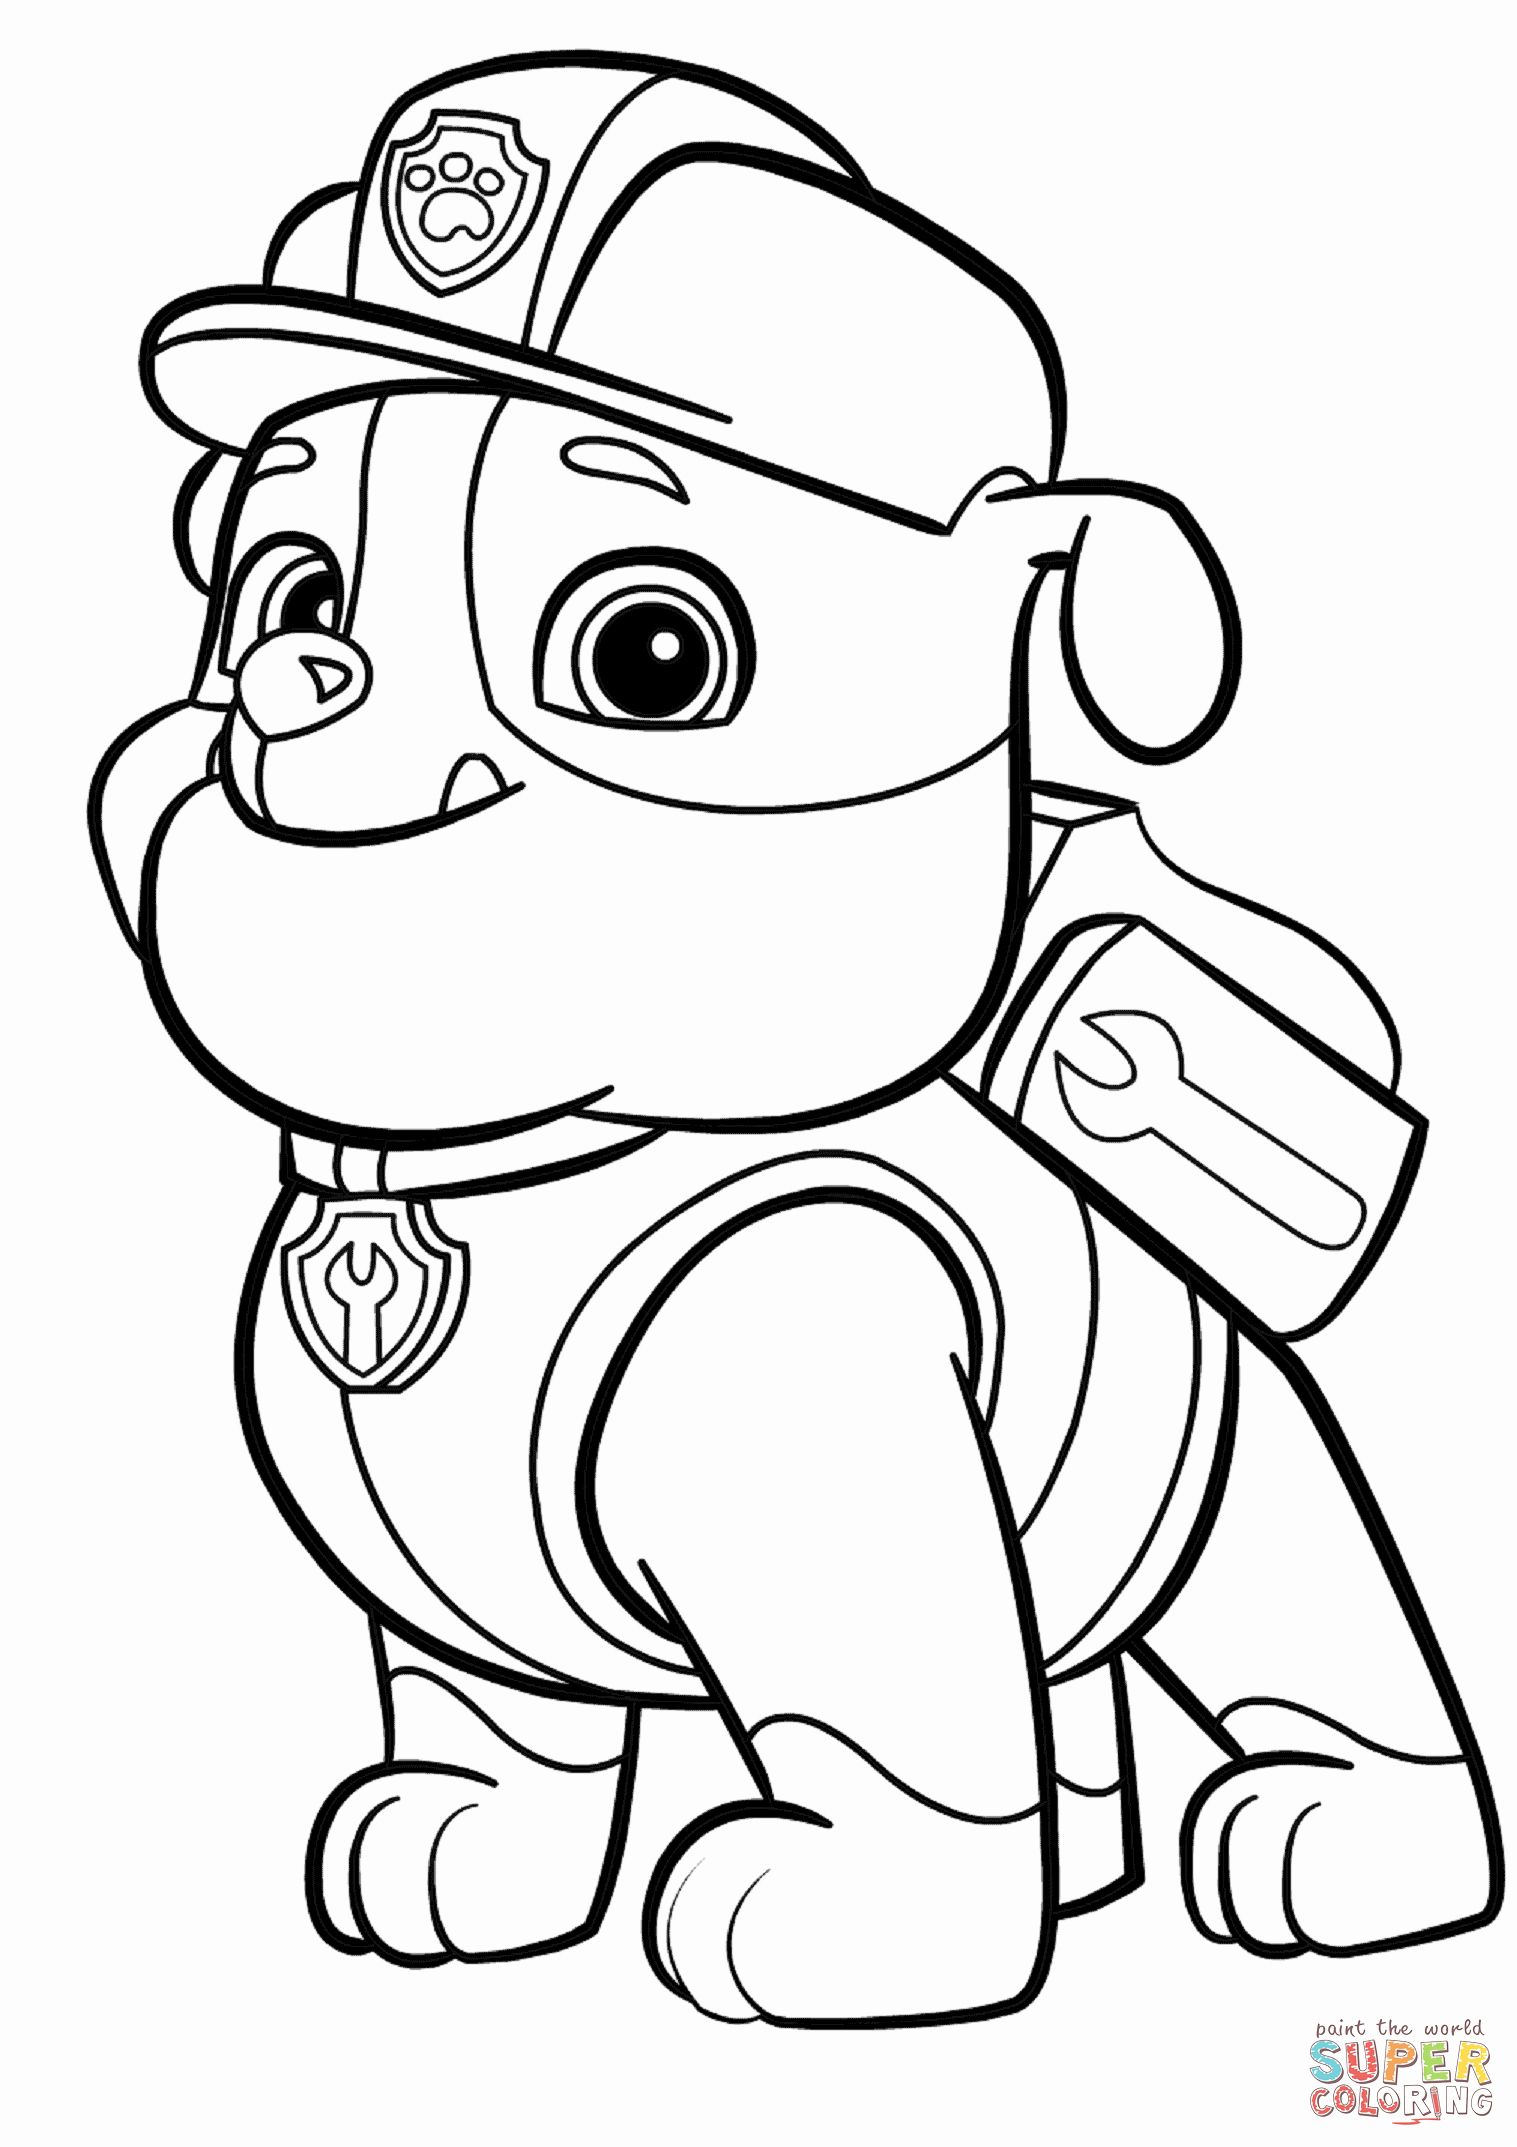 39 Coloring Pages Ideas In 2021